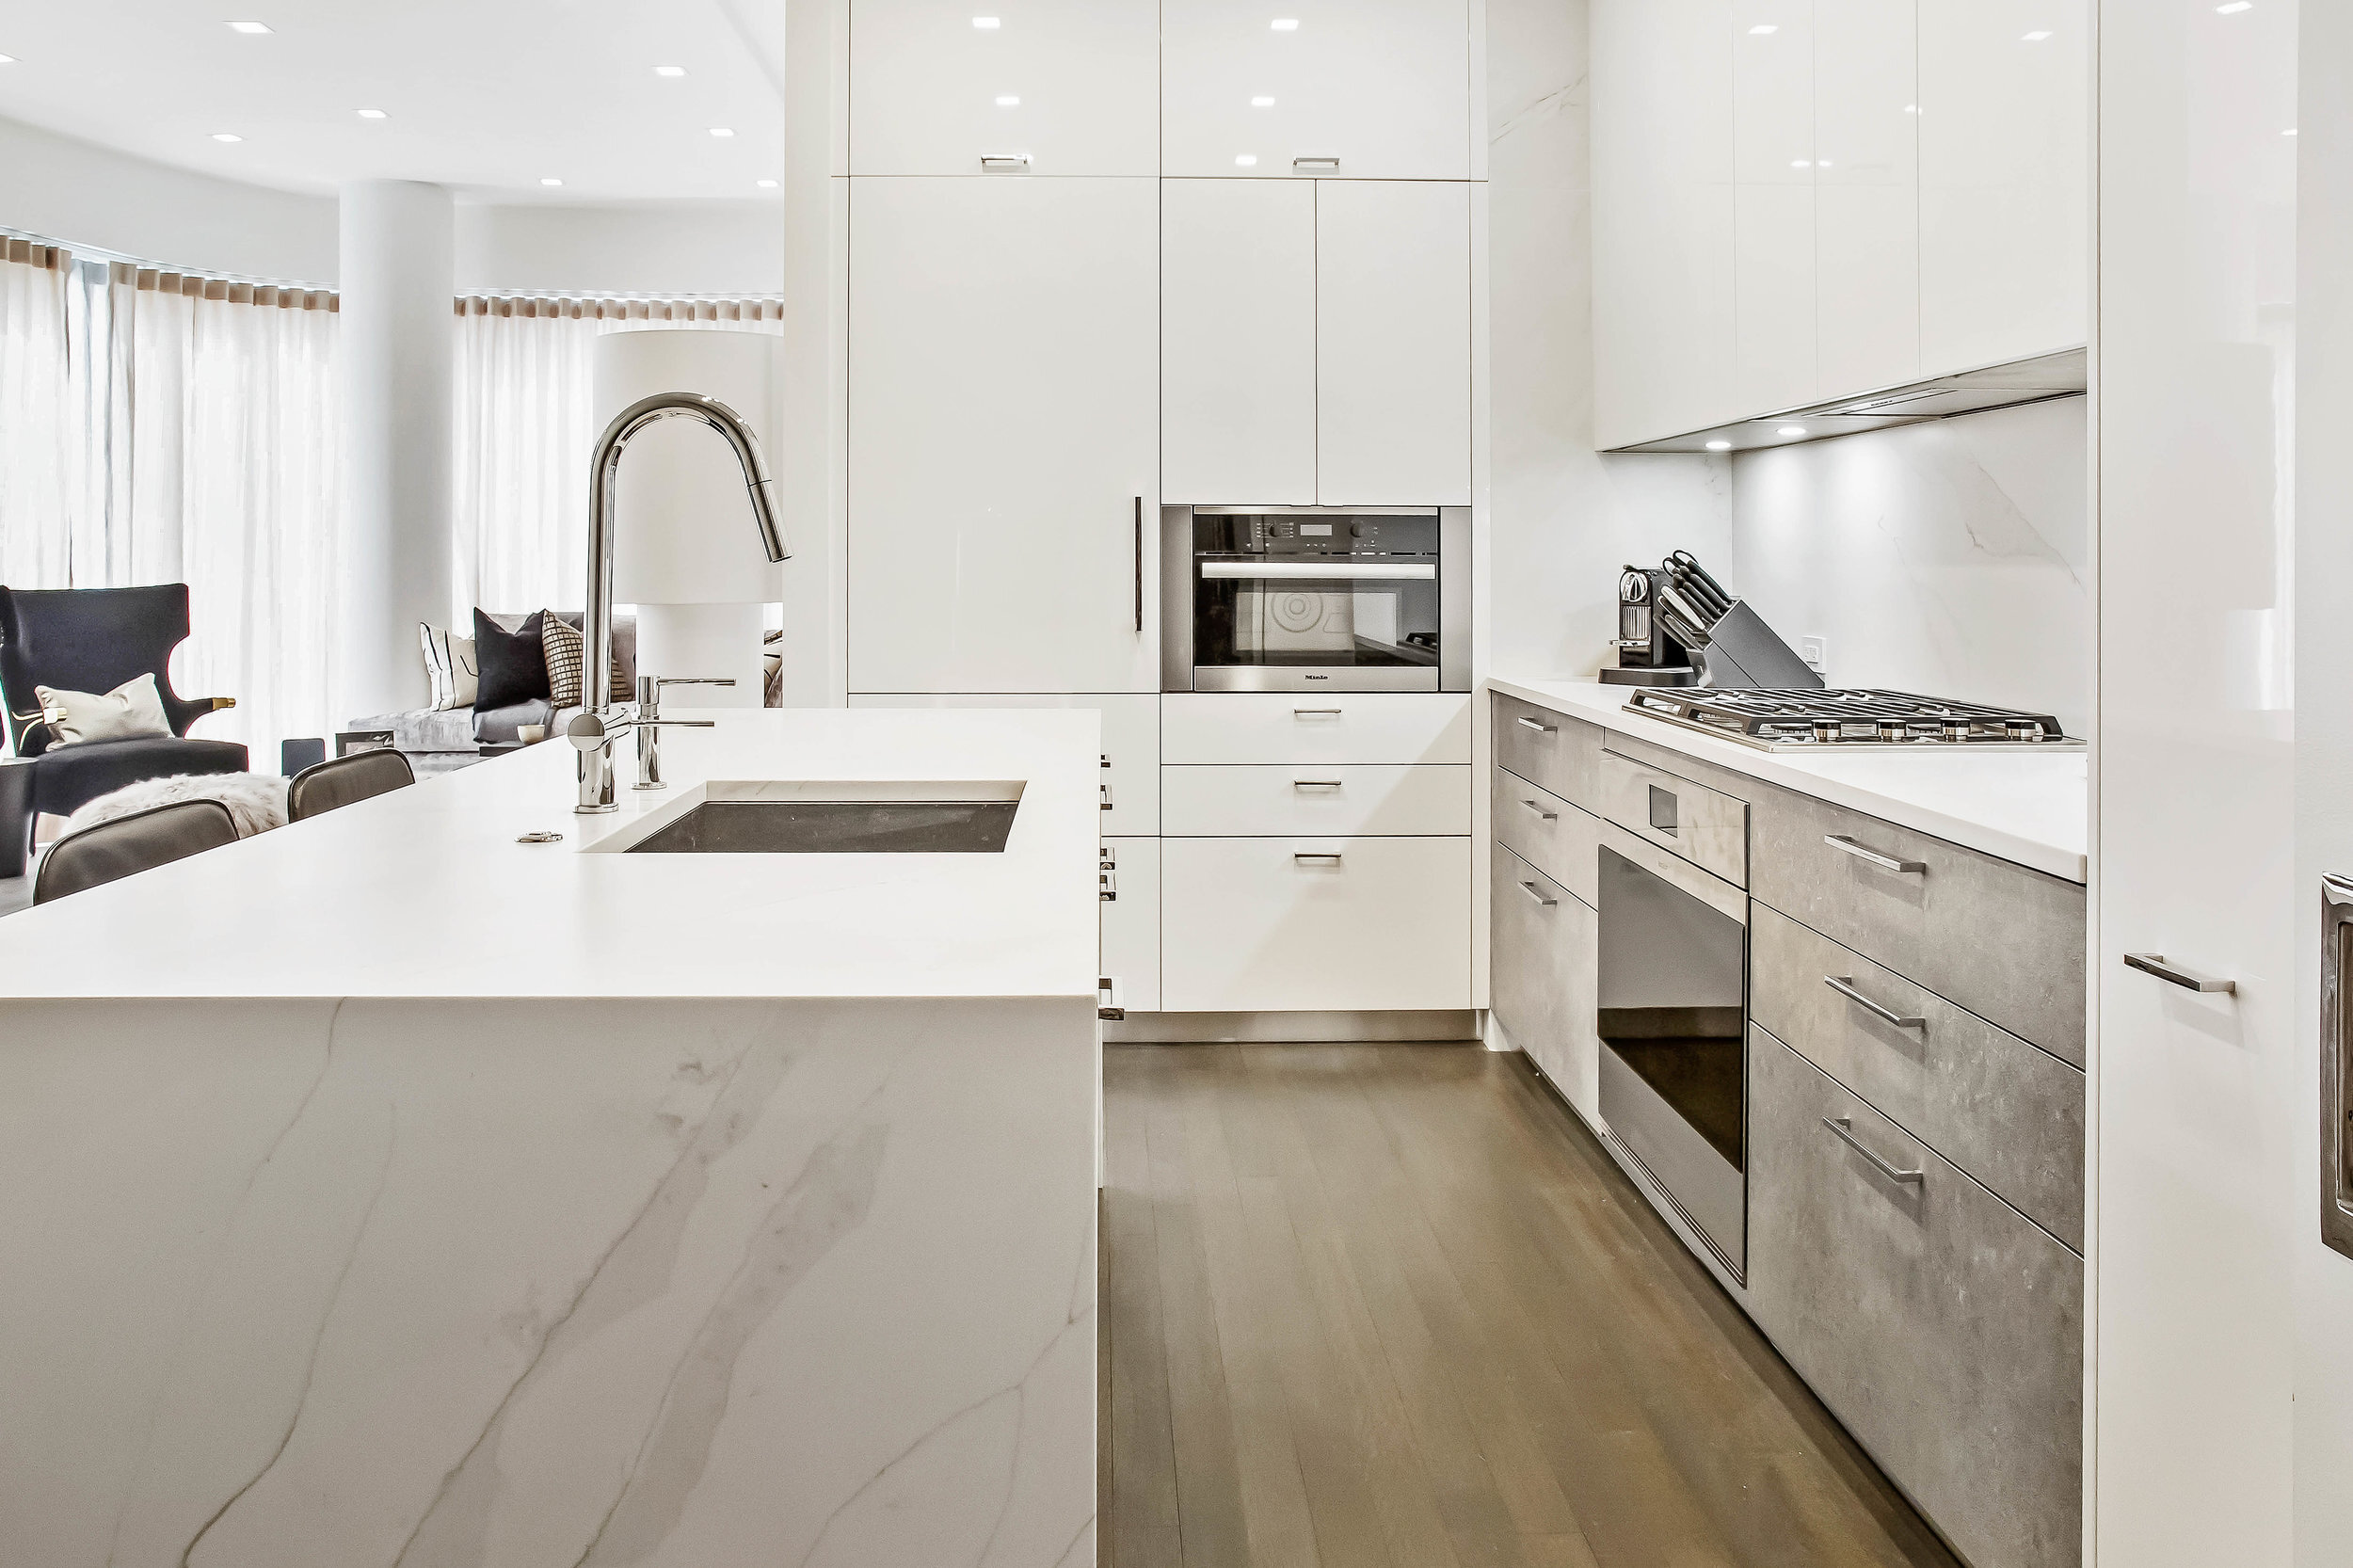 residential-projects-Chelsea-comp7.jpg